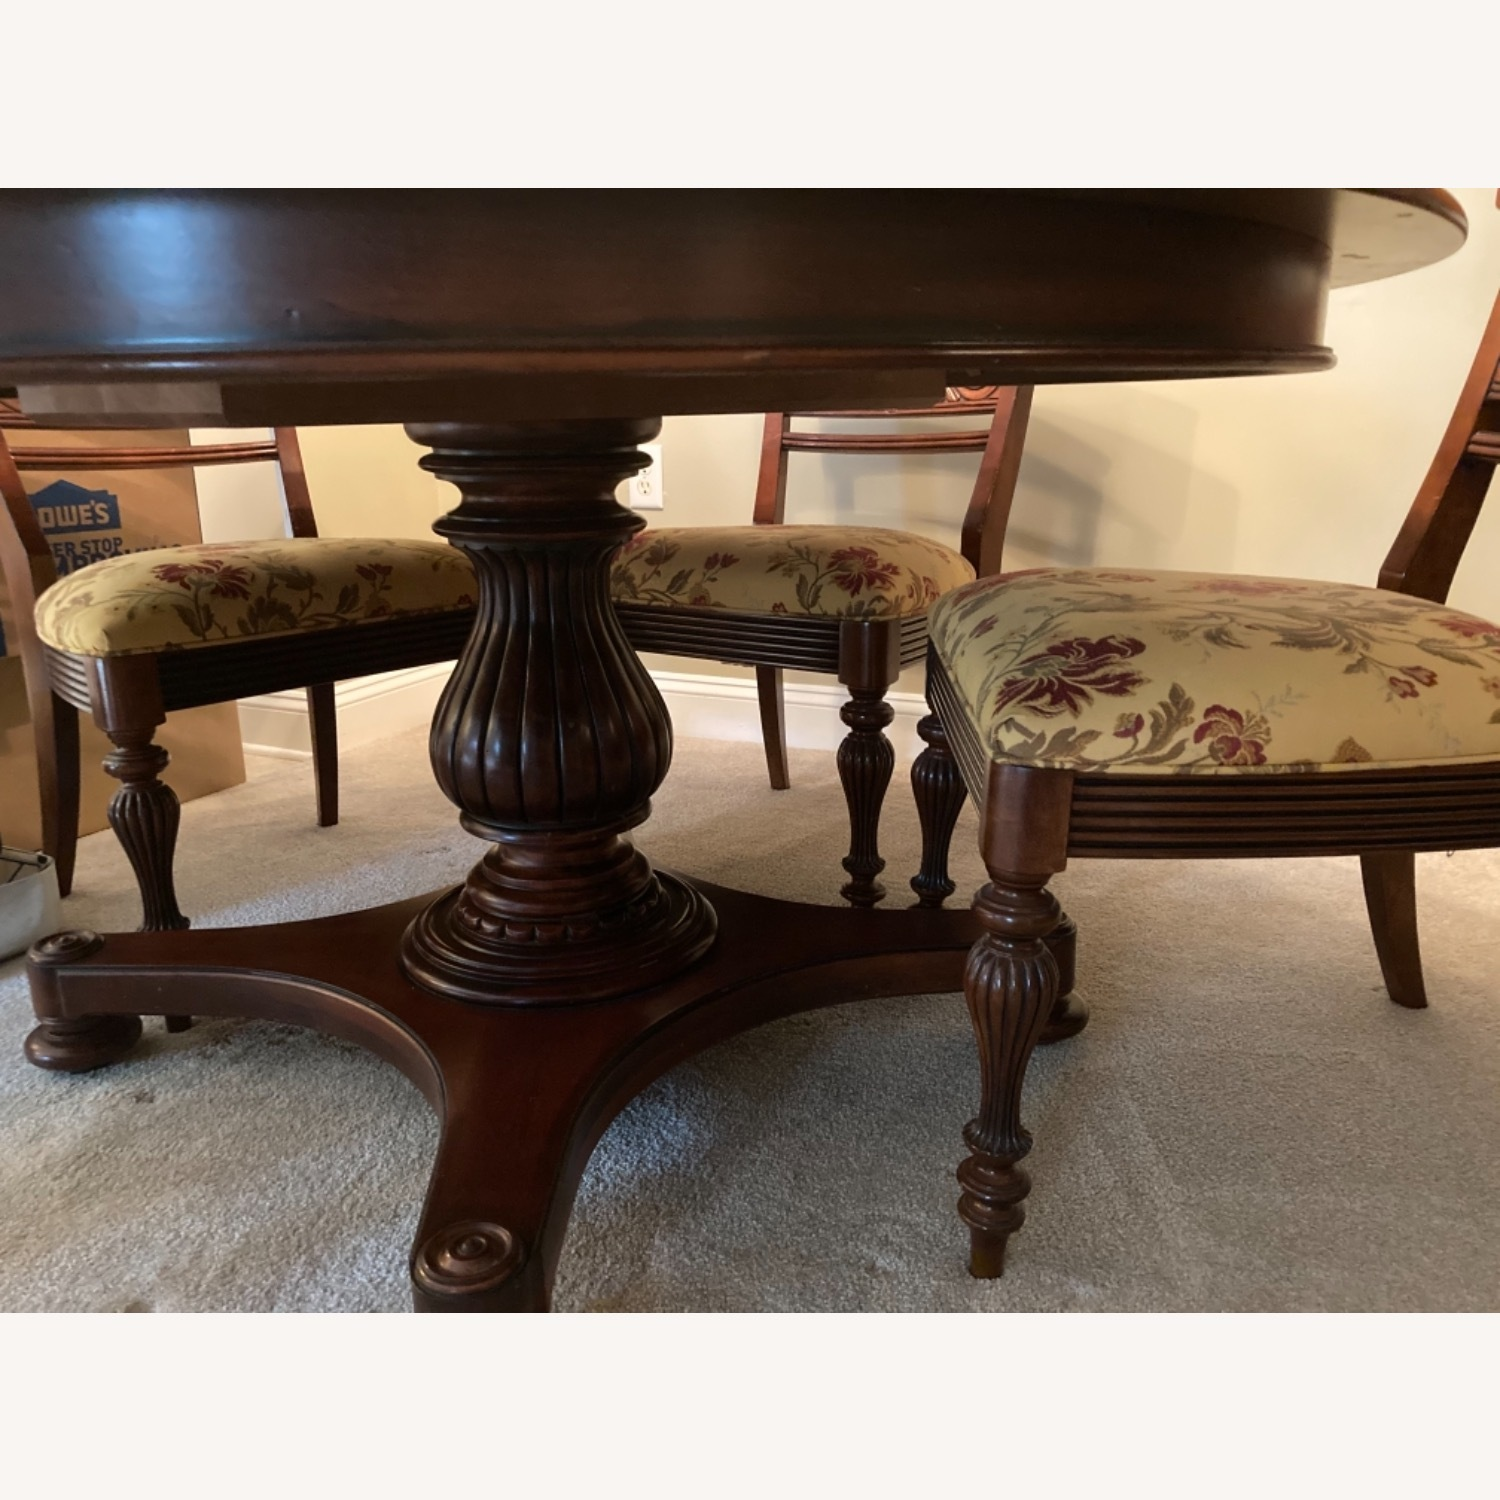 Ethan Allen Dining Room Table With 5 Chairs - image-3